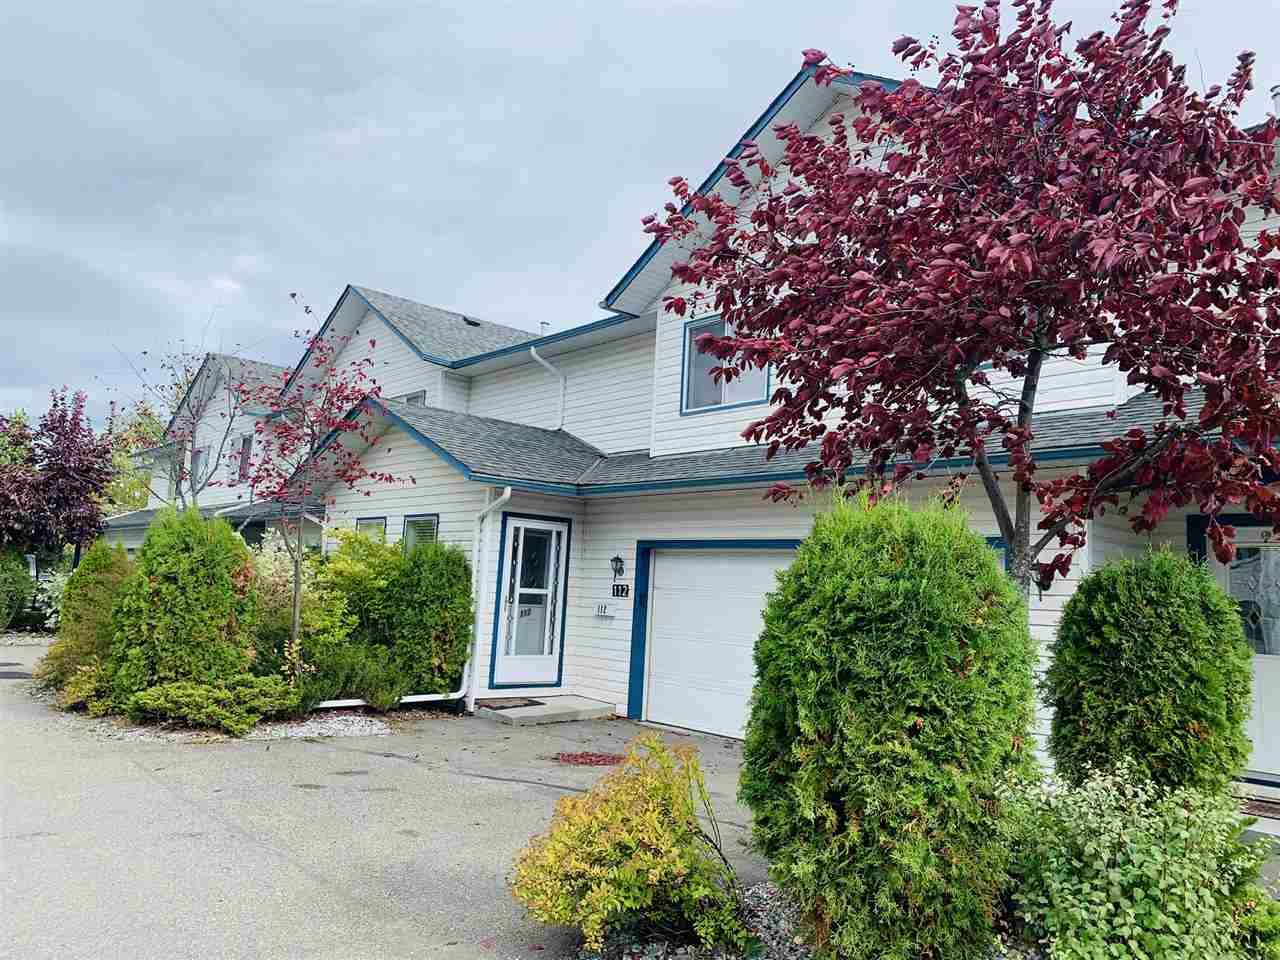 Main Photo: 112 4281 BAKER Road in Prince George: Charella/Starlane Townhouse for sale (PG City South (Zone 74))  : MLS®# R2508423